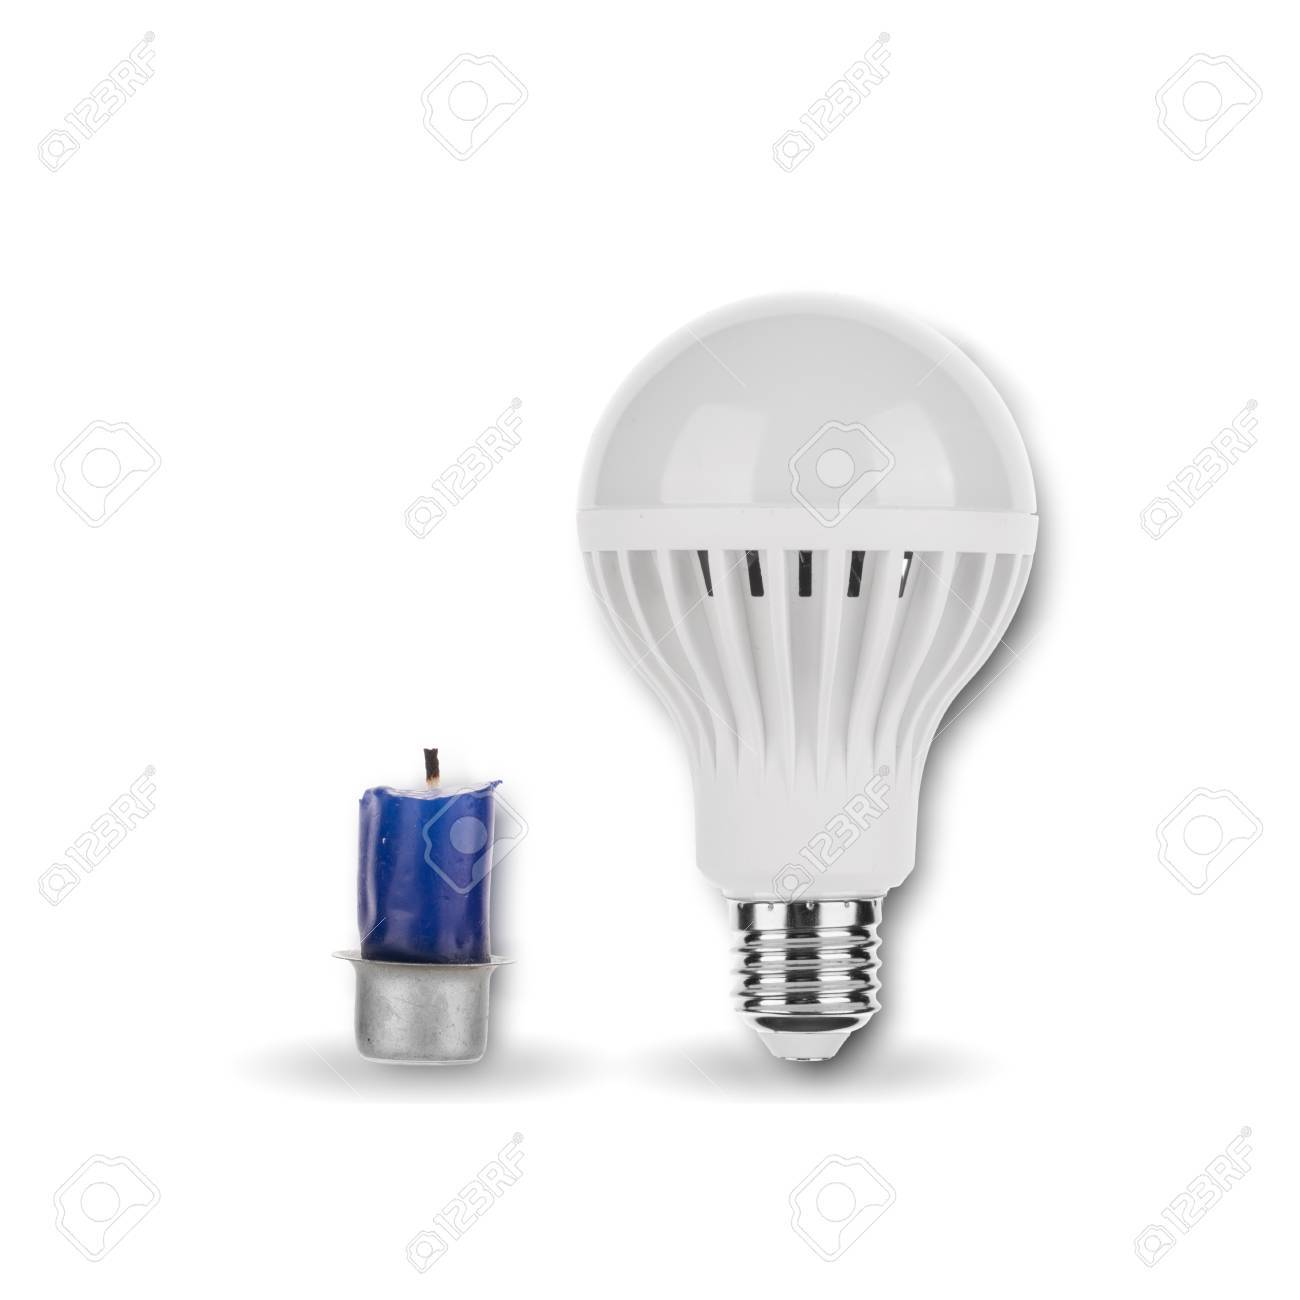 LED Light Bulb with Candle - 62117522